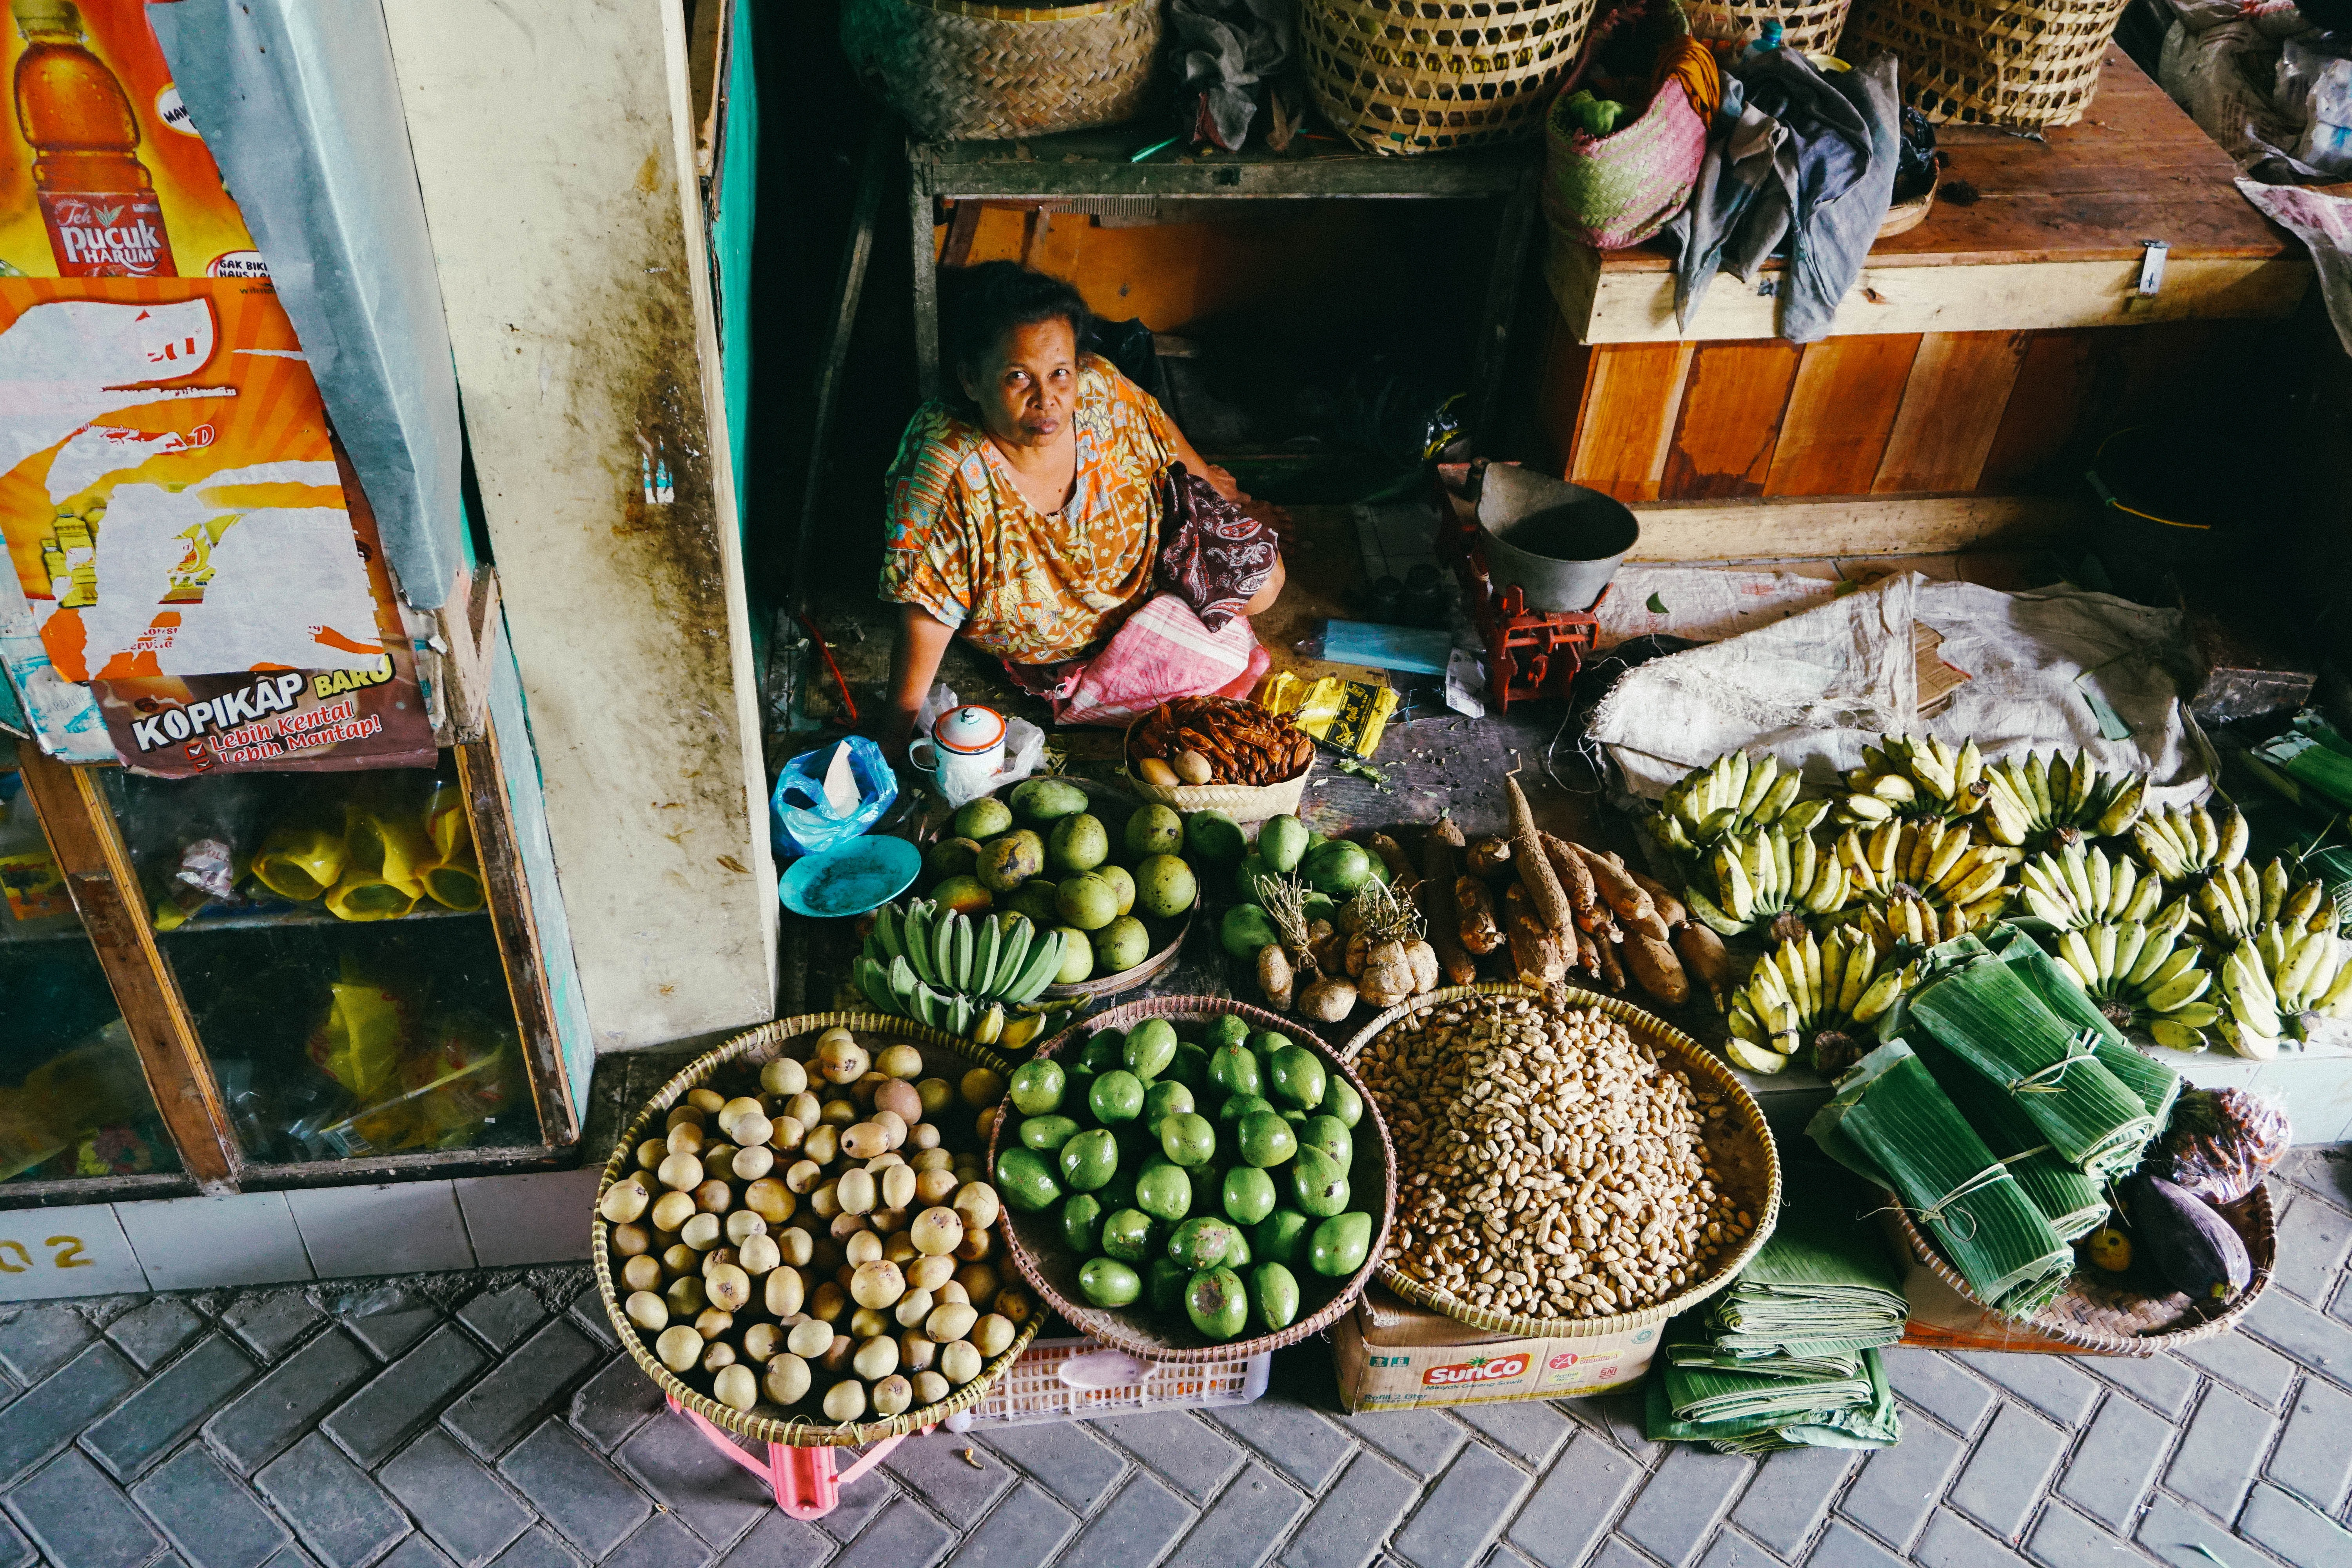 woman sitting beside fruits on display baskets